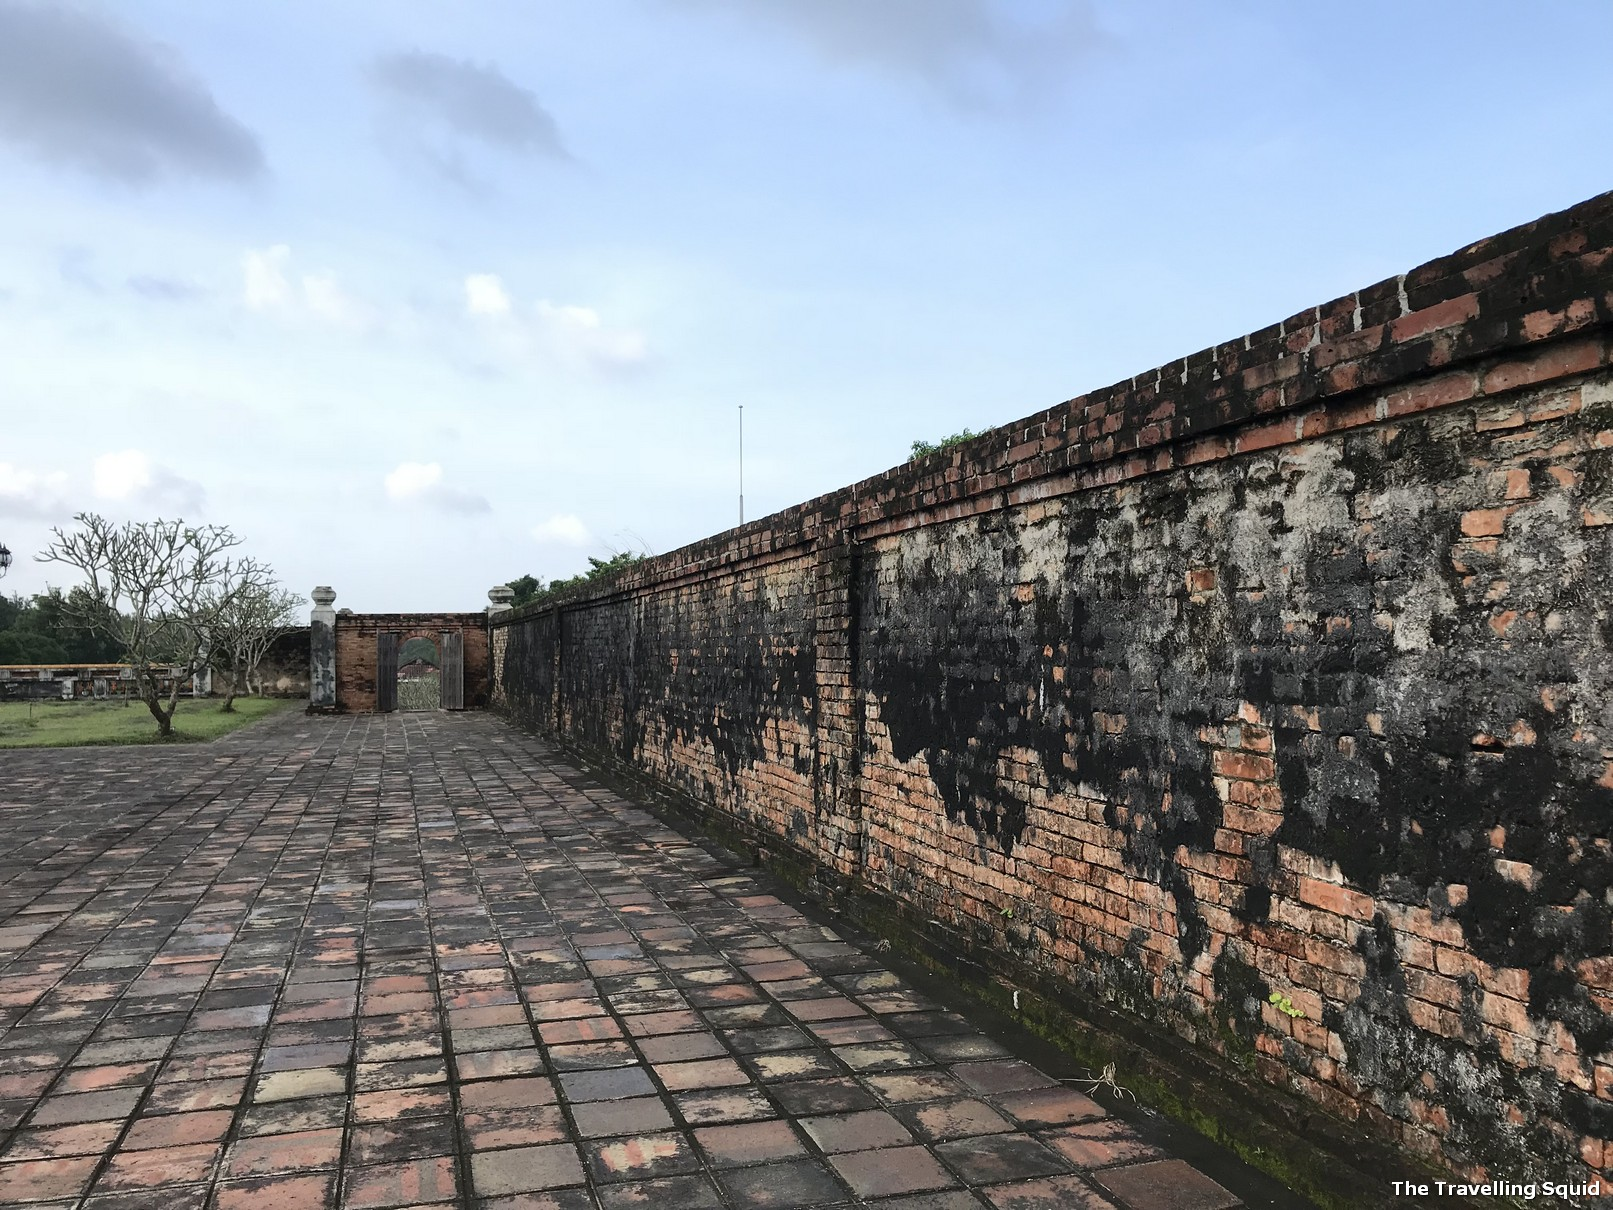 Unexpected sights at the Imperial City of Hue